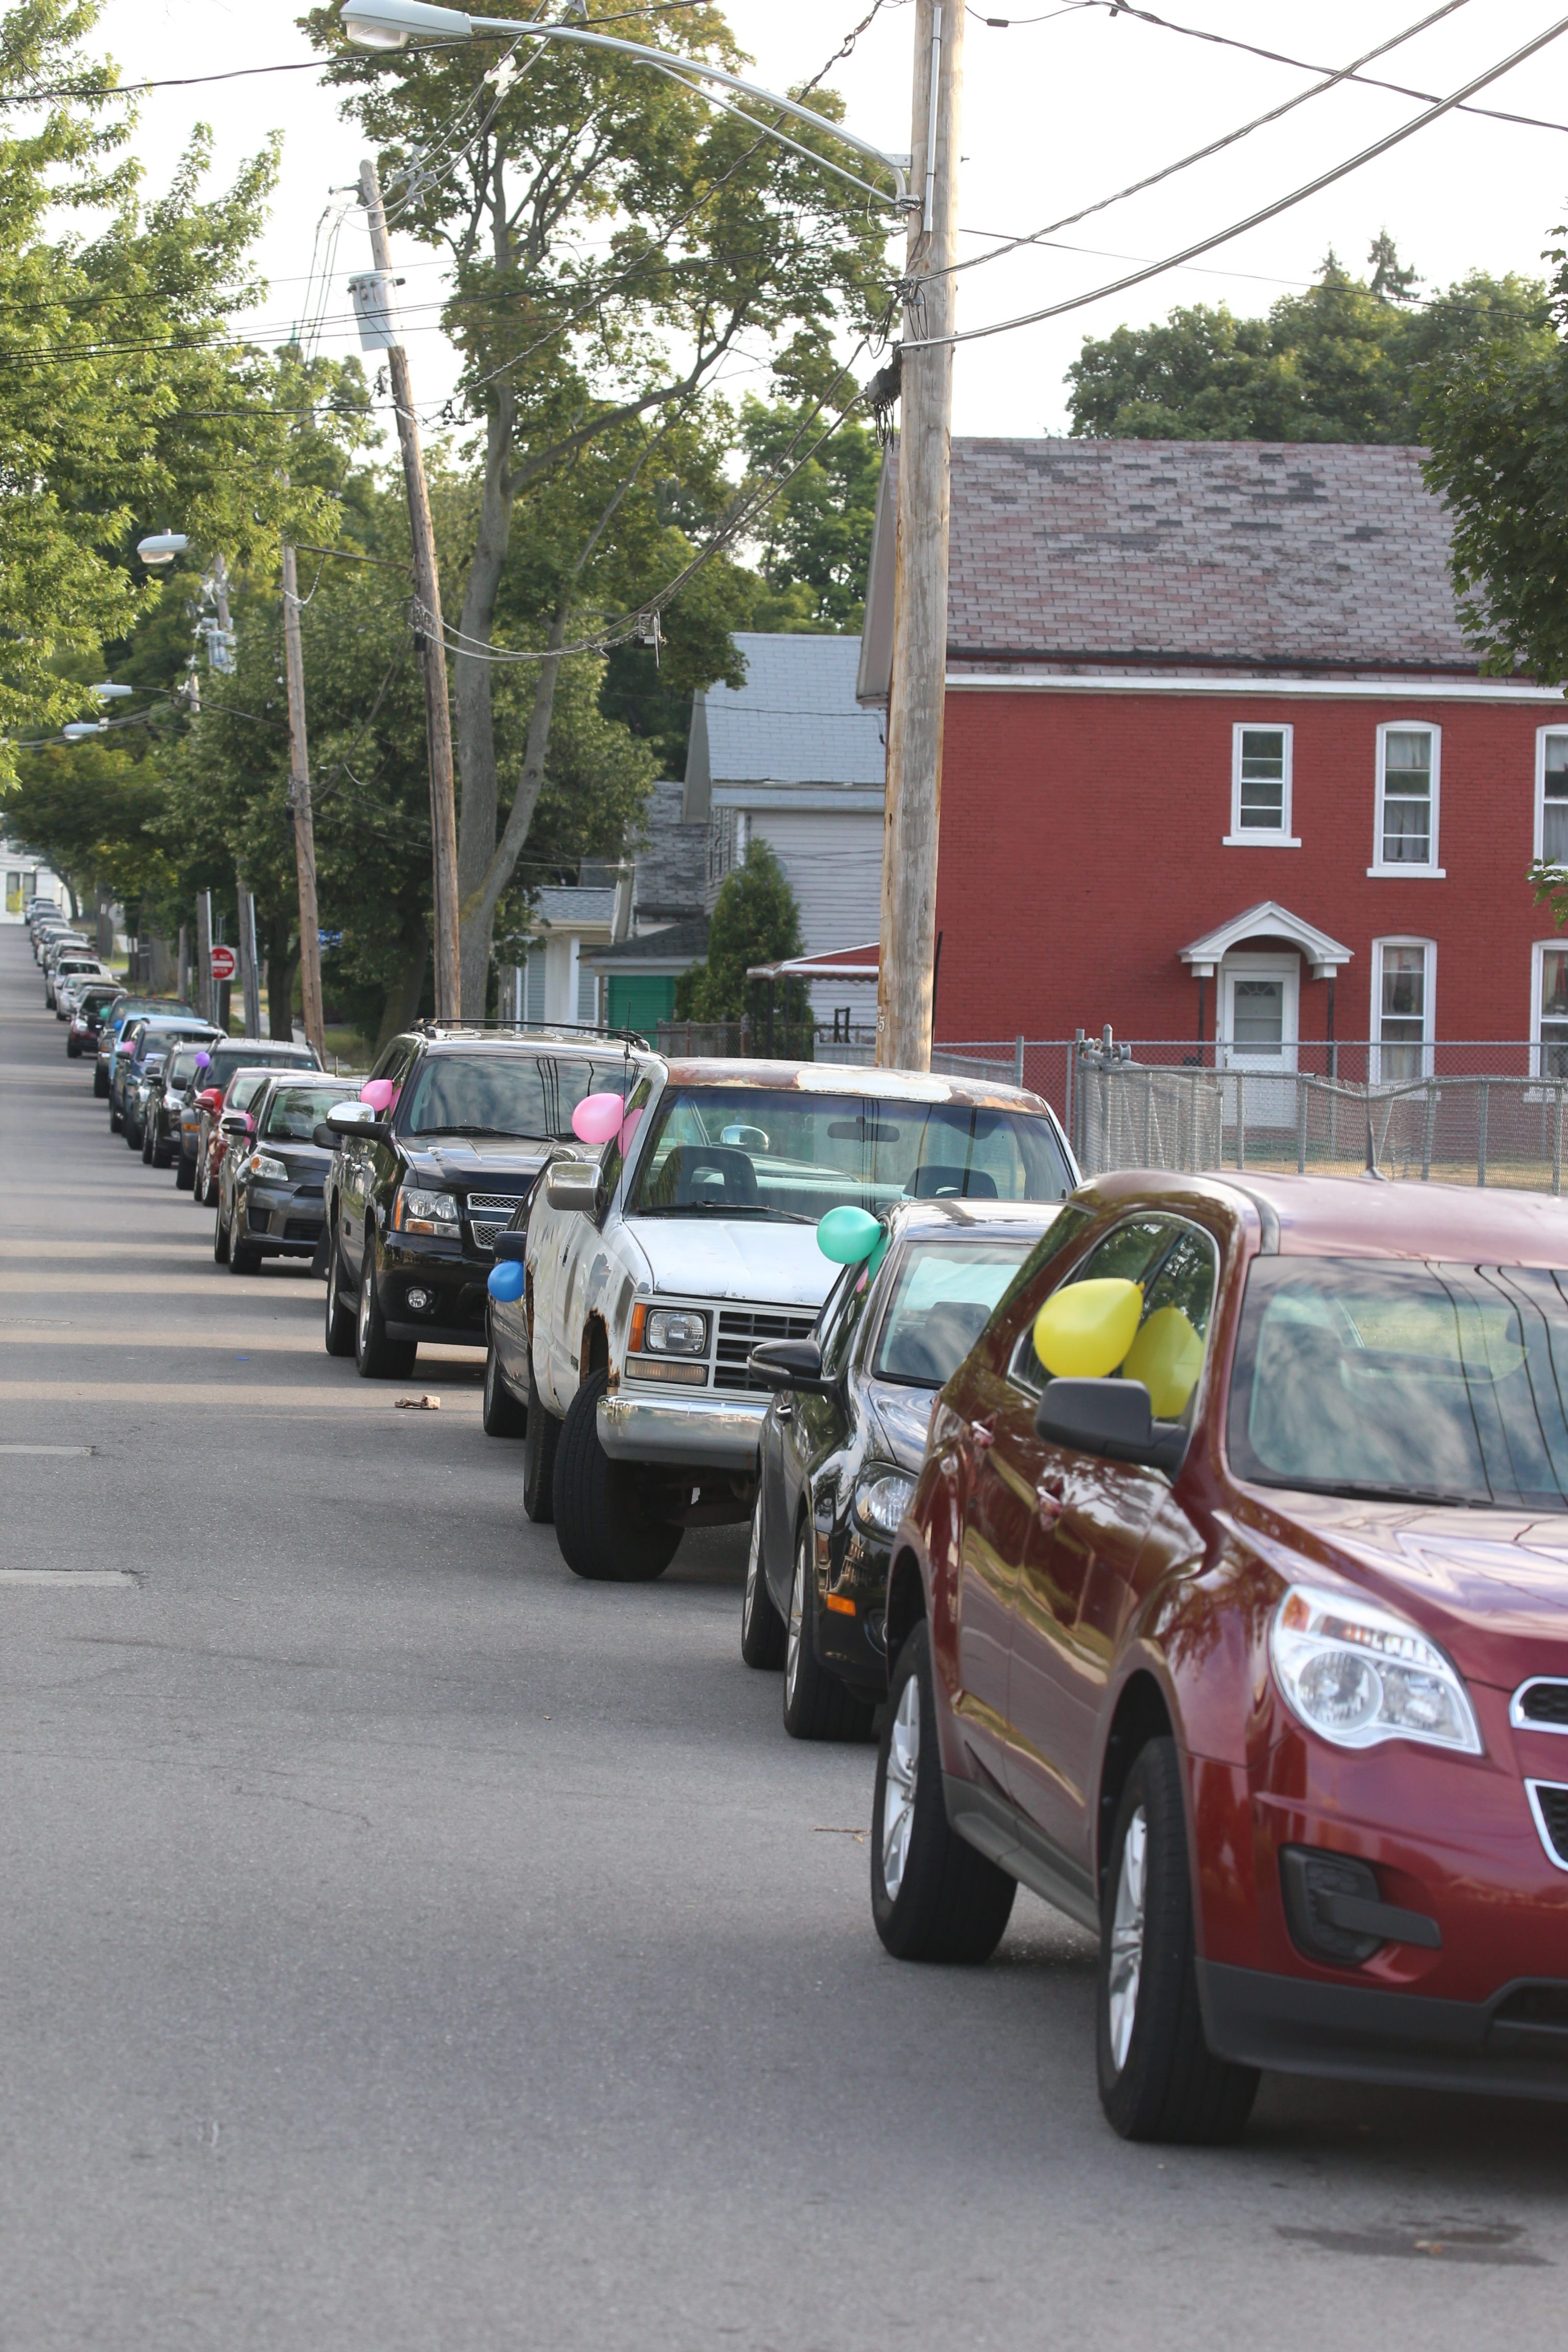 In August, Fruitbelt residents on Mulberry Street marked their vehicles with balloons and parked in parking spaces on the street to keep Medical Campus workers from parking in them as a protest. They argued that residents can't park on their own streets because the Buffalo Niagara Medical Campus won't provide parking for its workers. (John Hickey/Buffalo News)